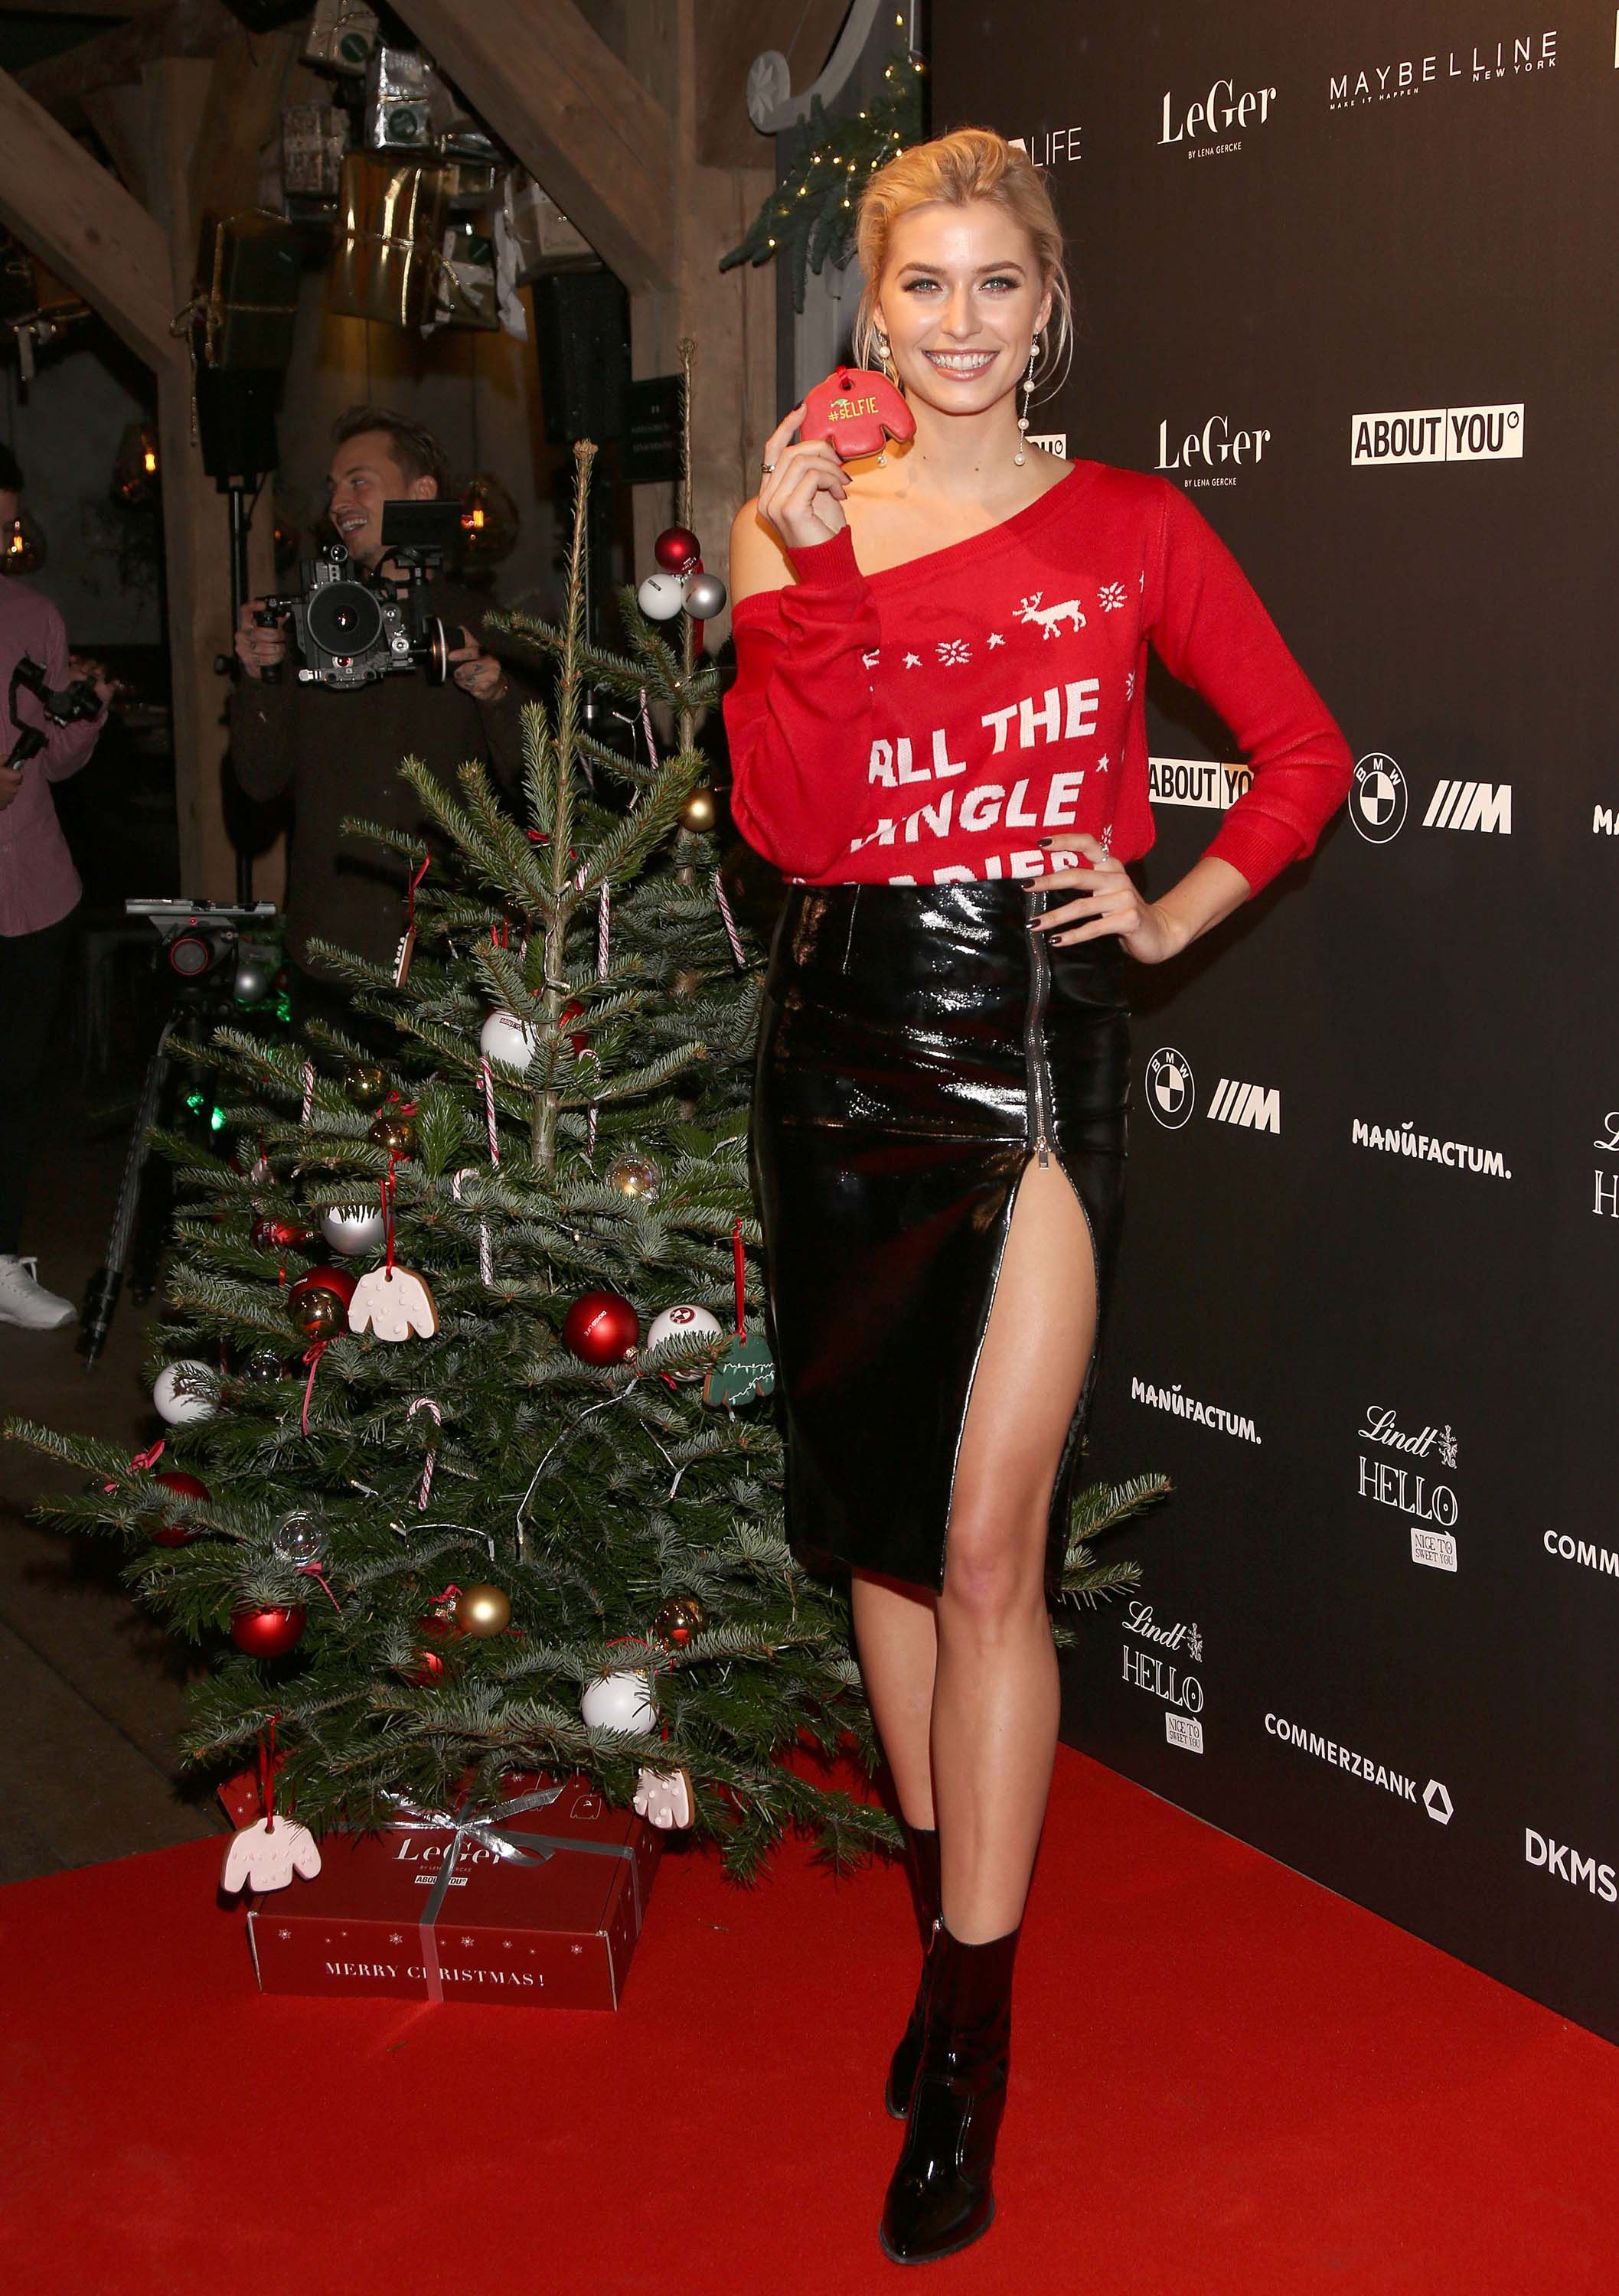 Lena Gercke Attends Christmas Dinner Party Fashion Hot